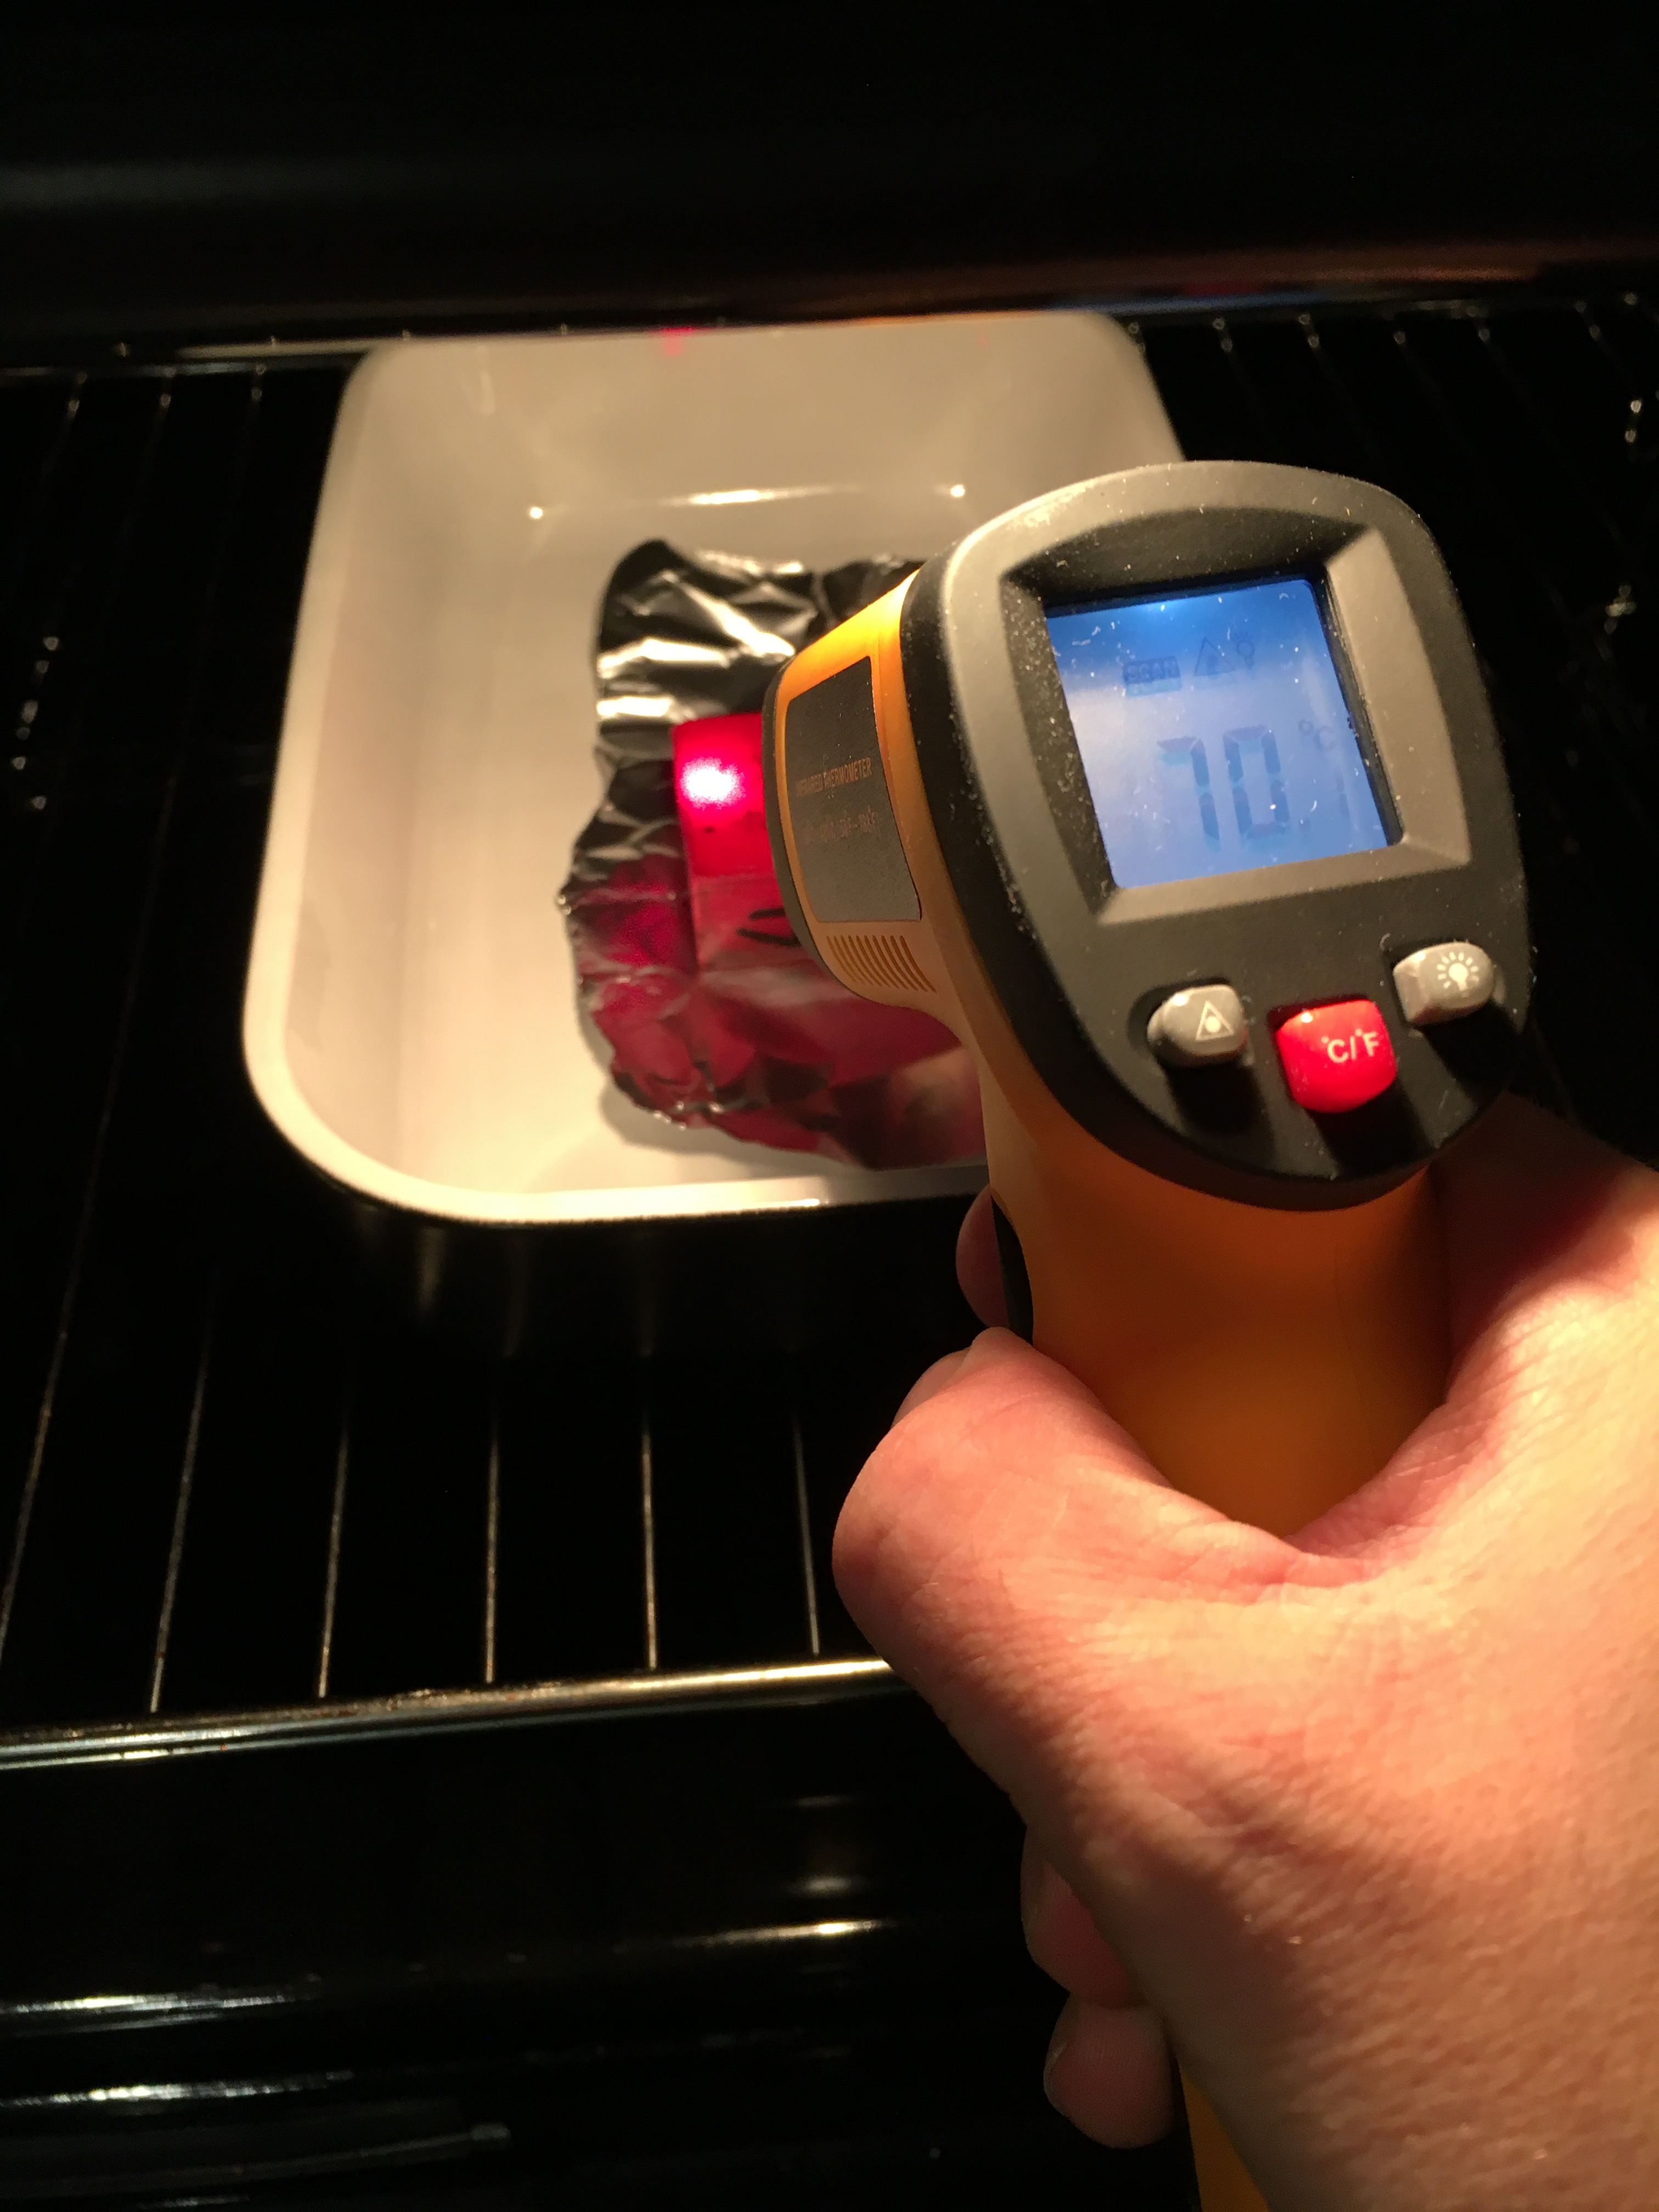 Picture of Heat in Oven